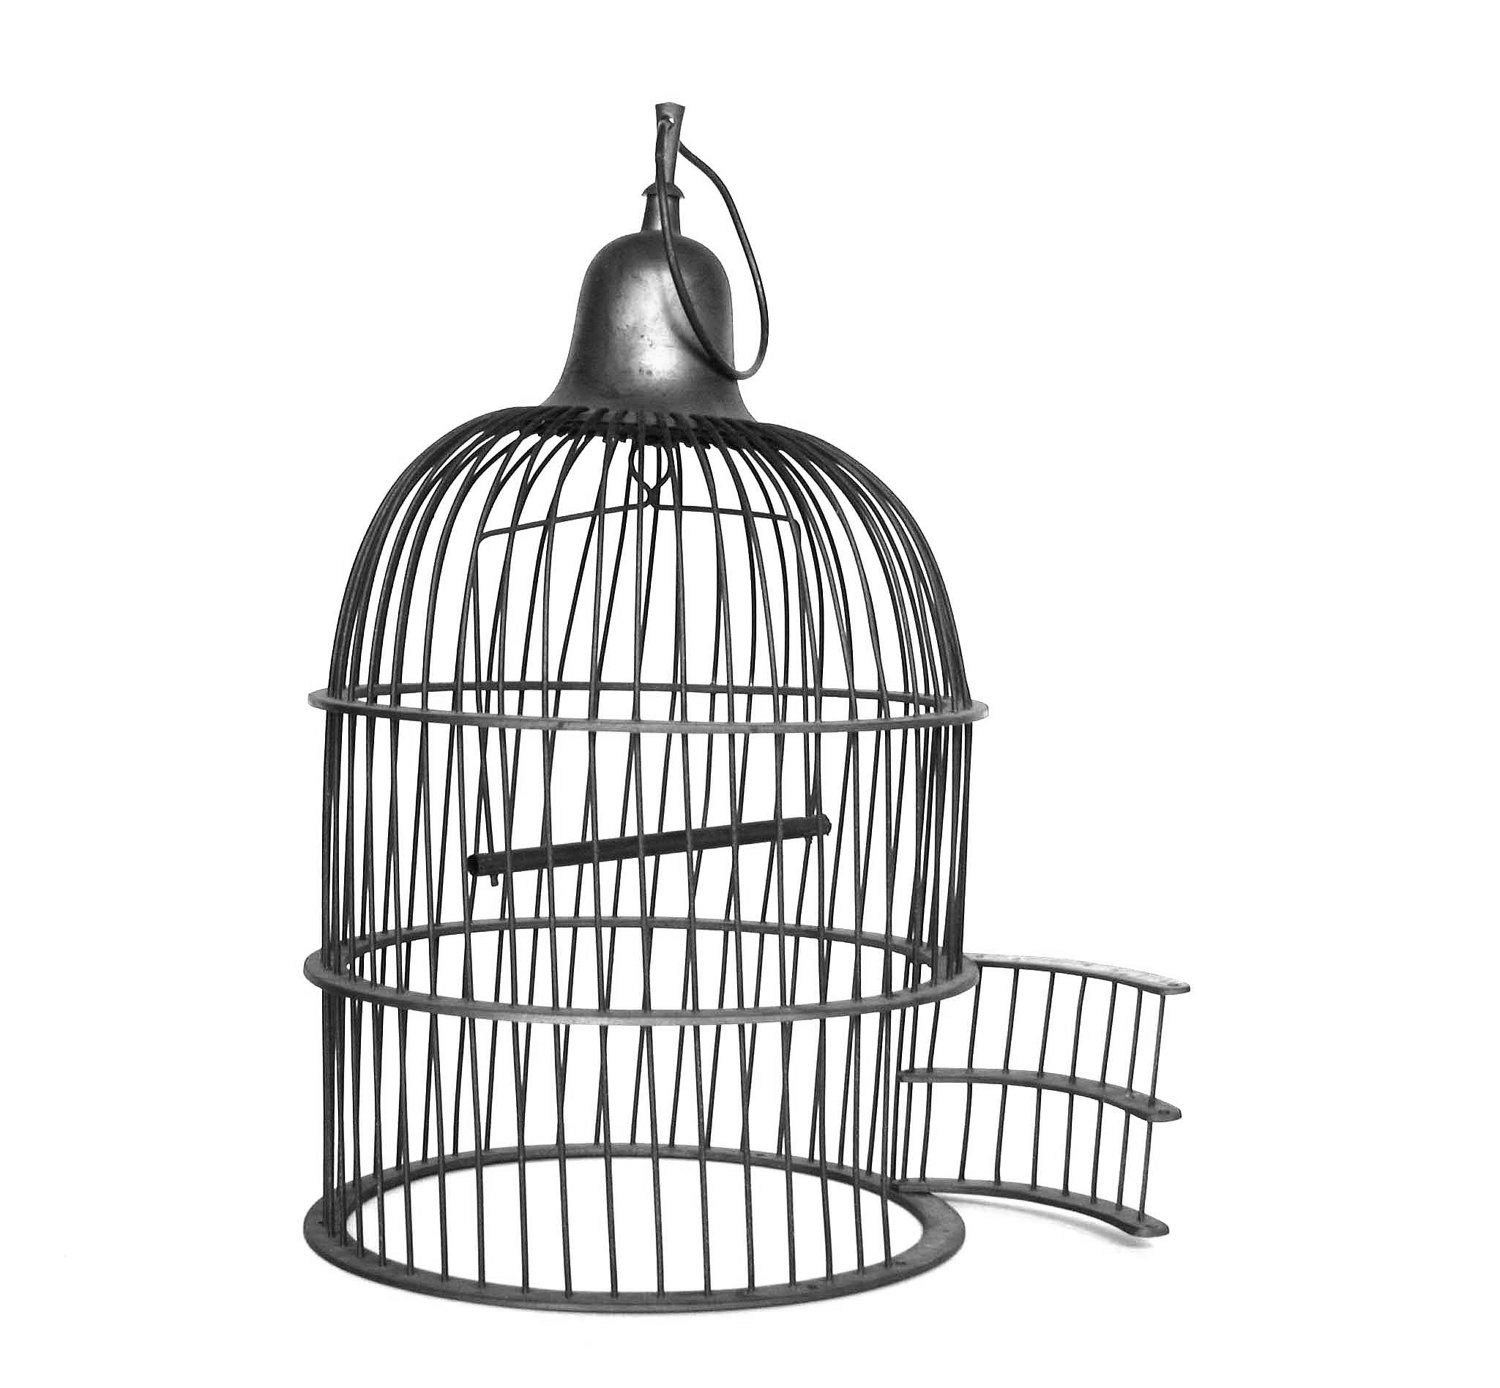 Empty Bird Cage Drawing